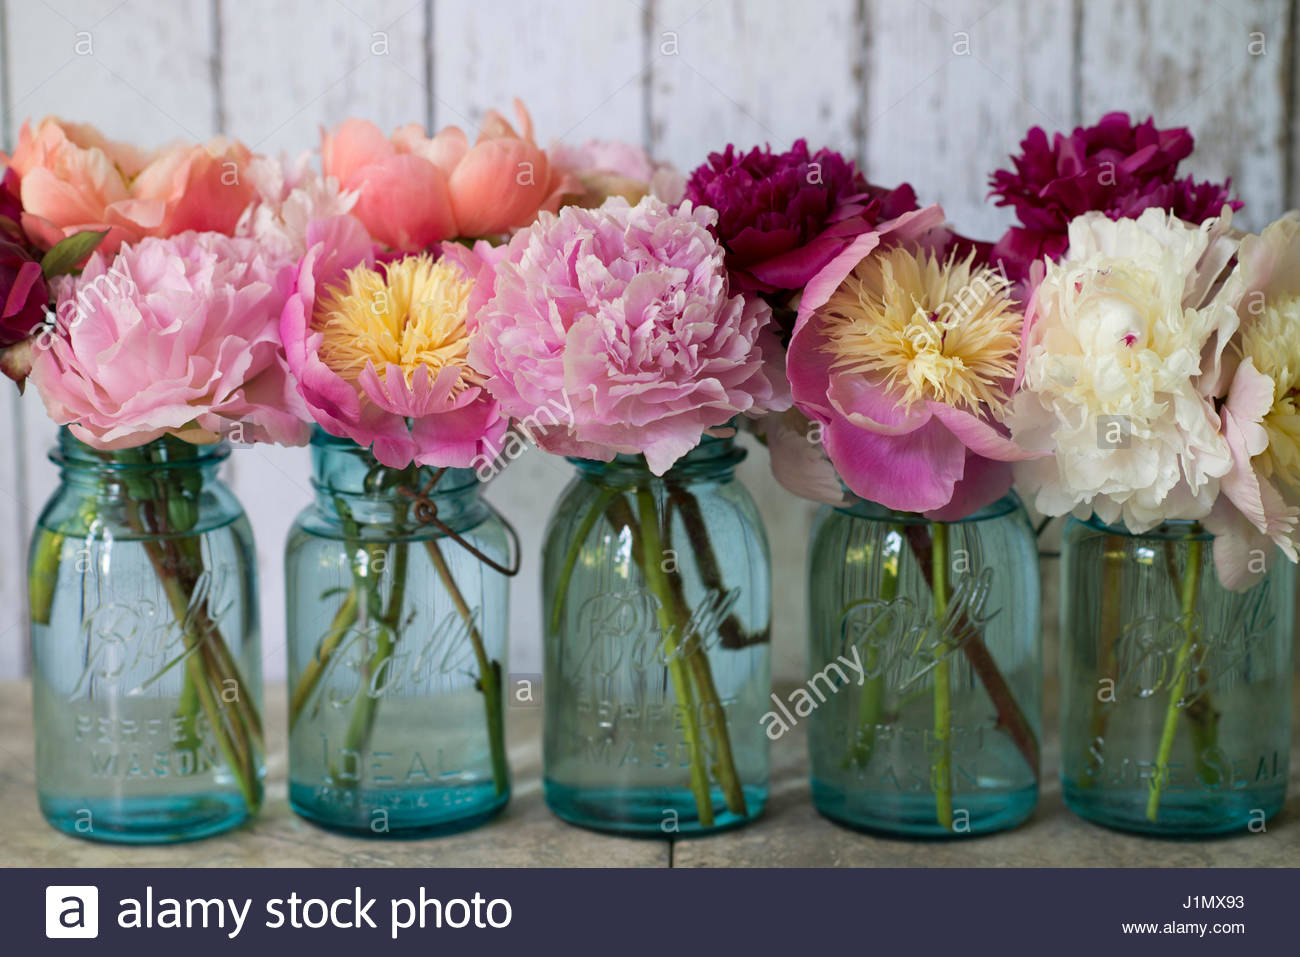 PAEONIA LACTIFLORA 'BOWL OF BEAUTY'  'SARAH BERNHARDT' AND 'CORAL CHARM' IN VINTAGE BLUE - Stock Image